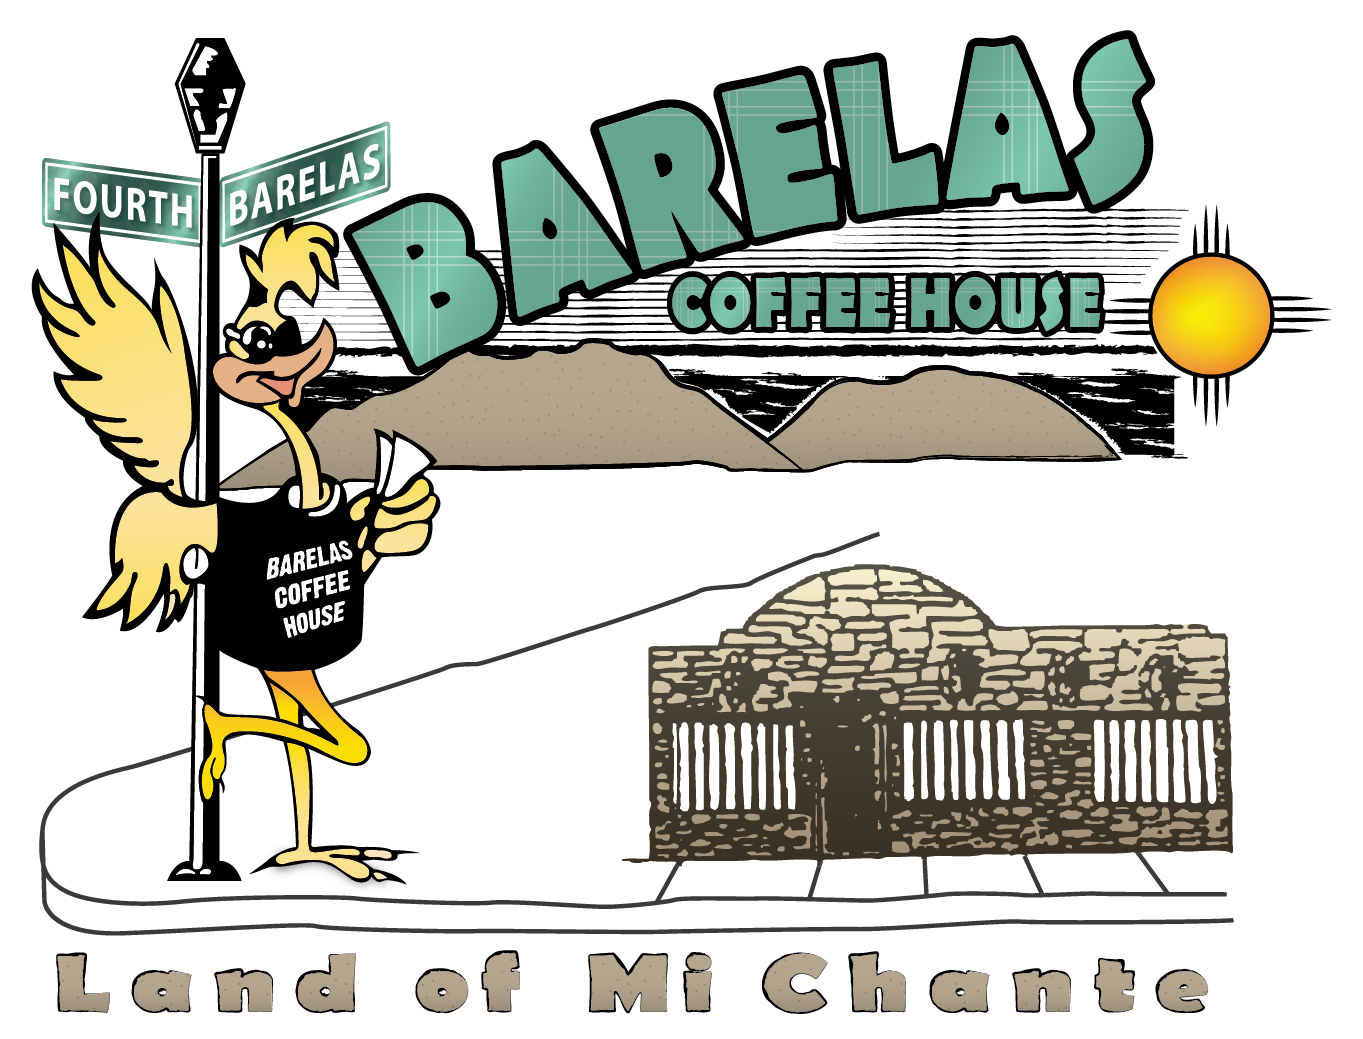 Tickets Also Available - For Purchase at Barelas Coffee House @1502 4th St SE, Albuquerque, NM87102(505) 843-7577